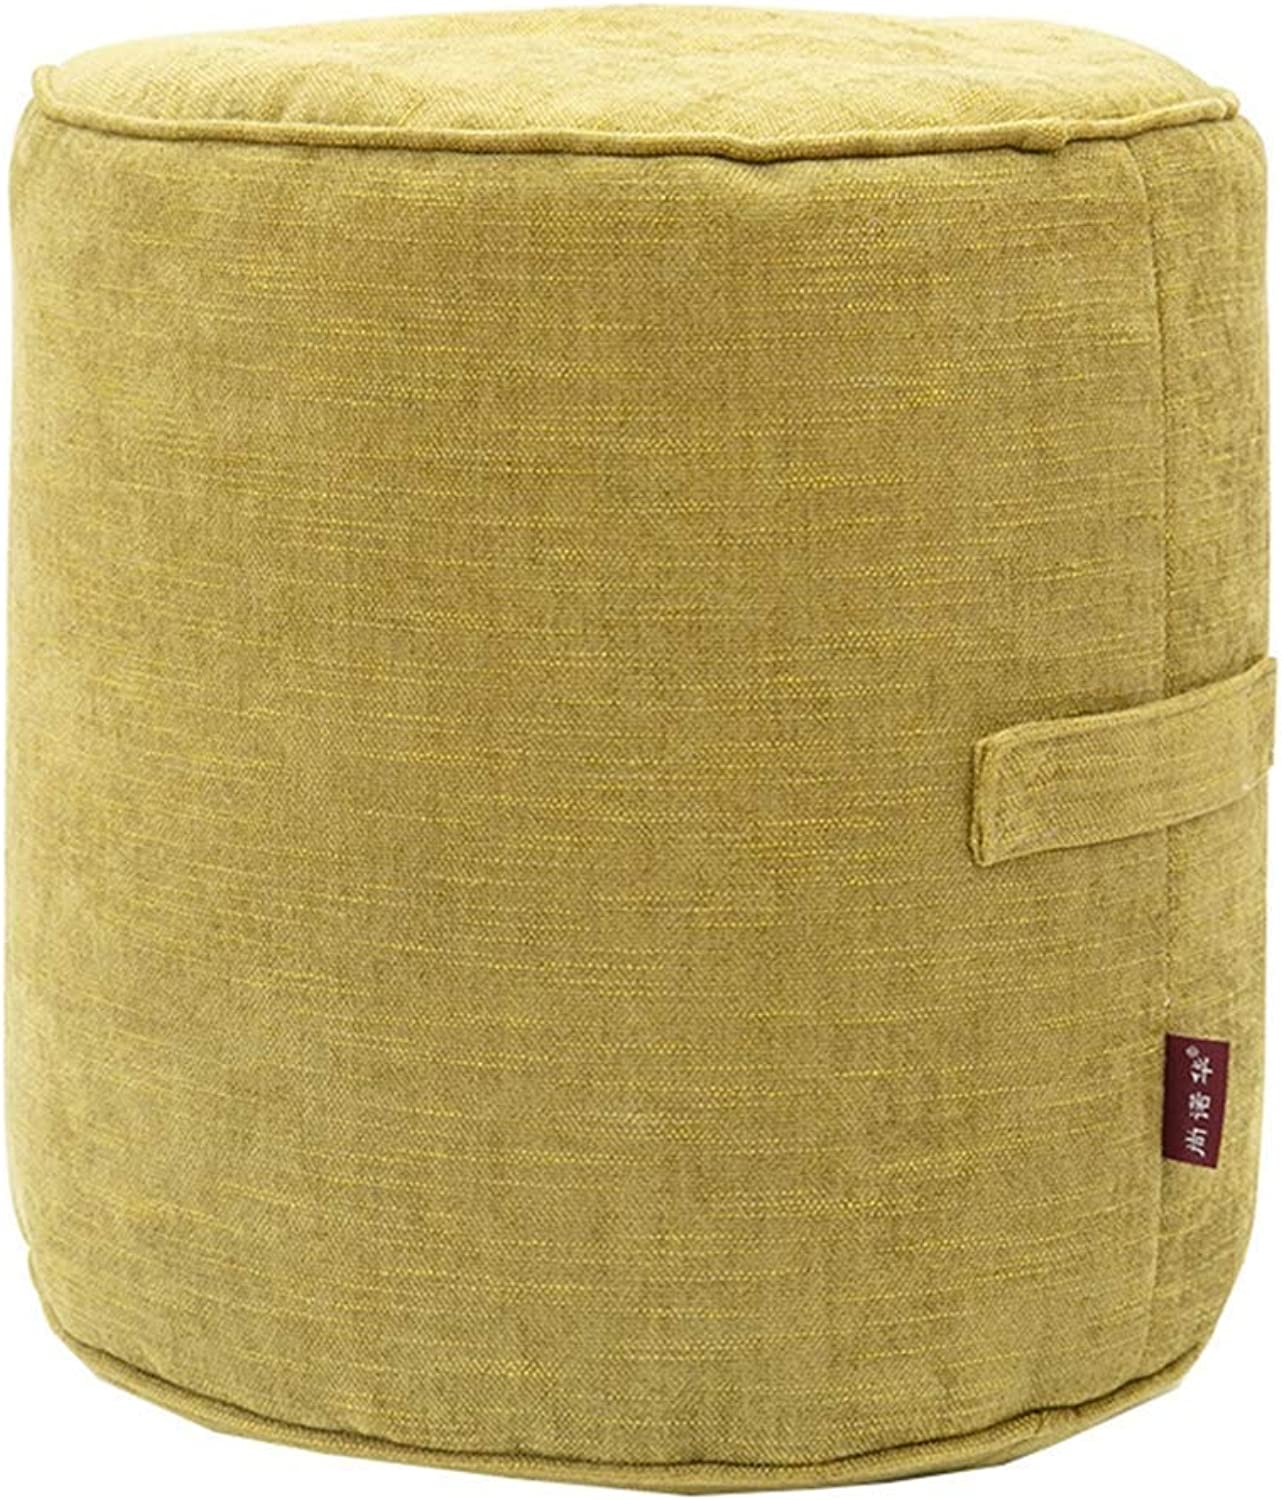 Footstool Sofa Stool, Fabric Living Room Stool, Simple Makeup Stool, shoes Stool, Yellow-Green (40x40×40cm),1